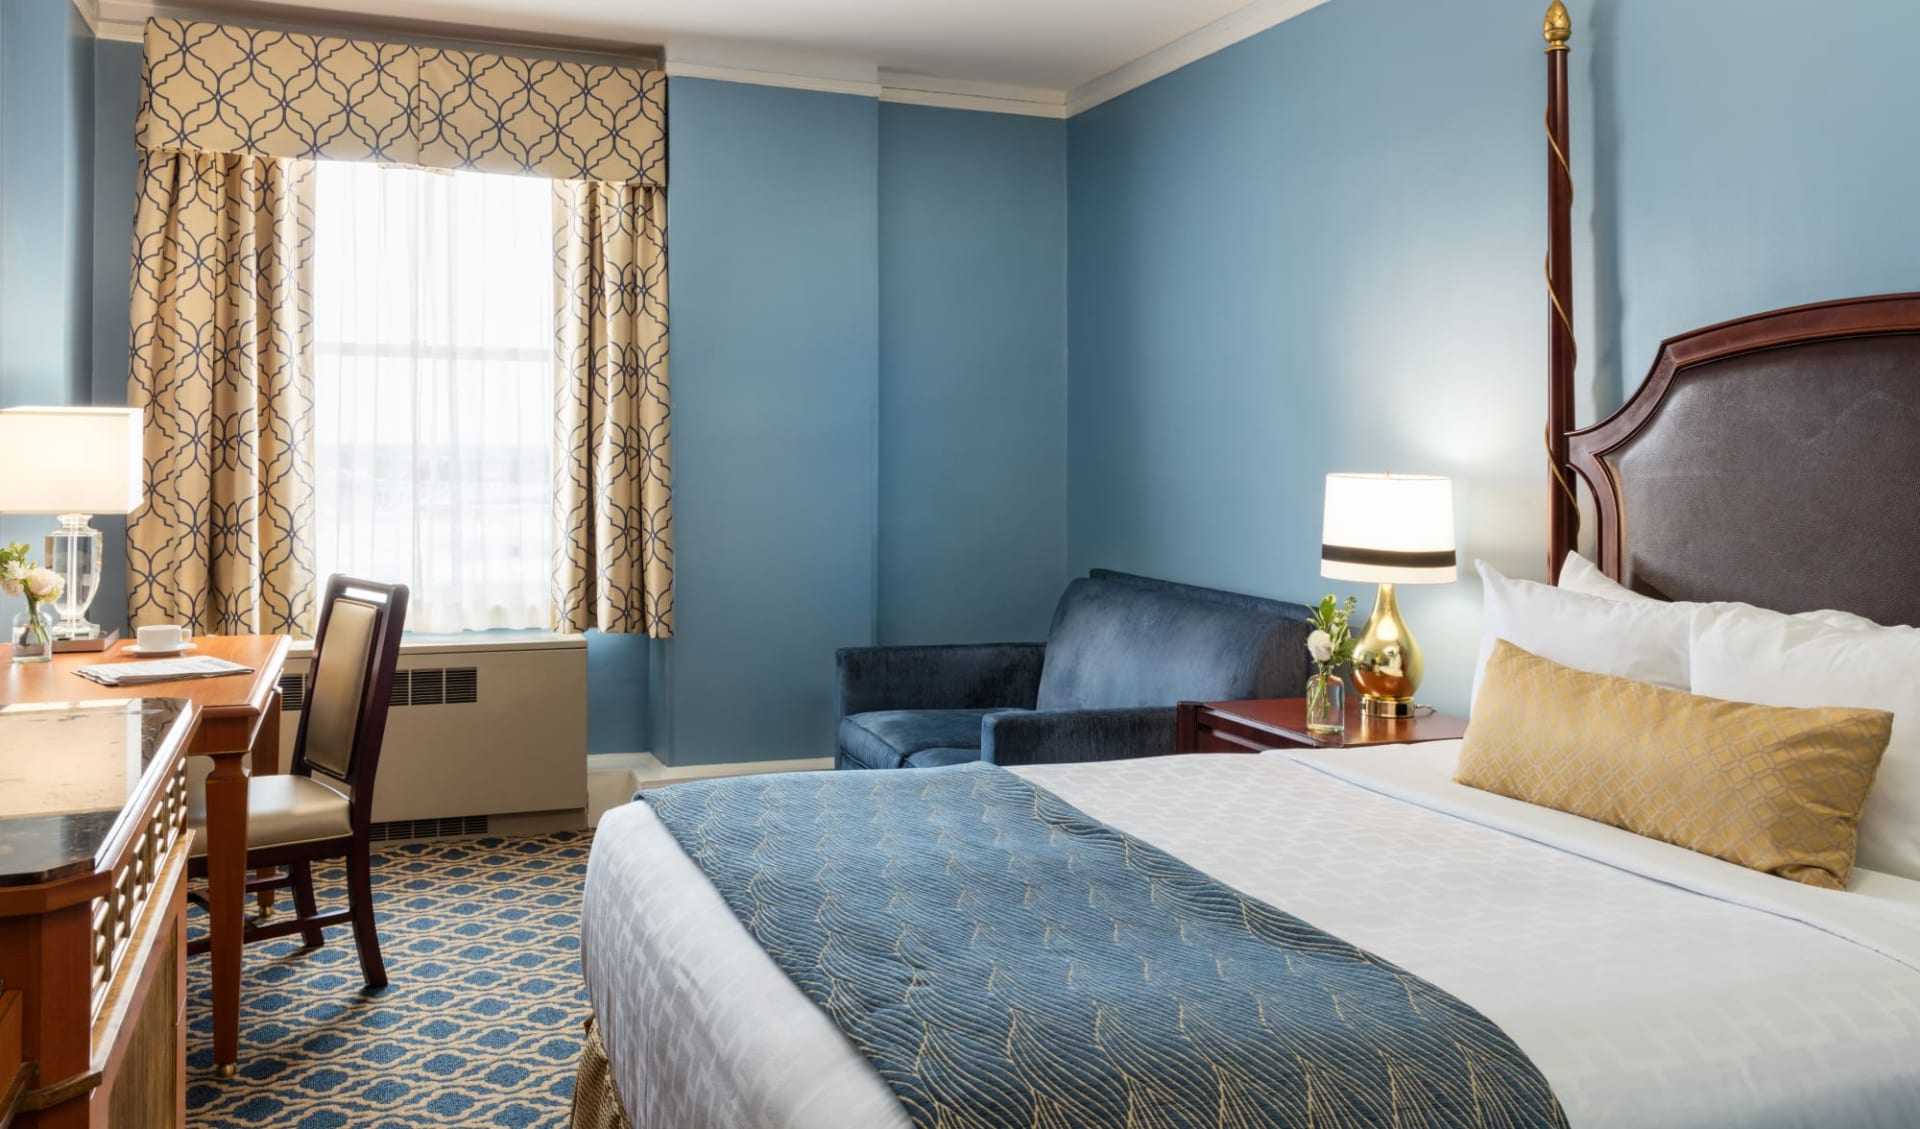 Francis Marion Hotel in Charleston:  Francis Marion Hotel_Traditional Room